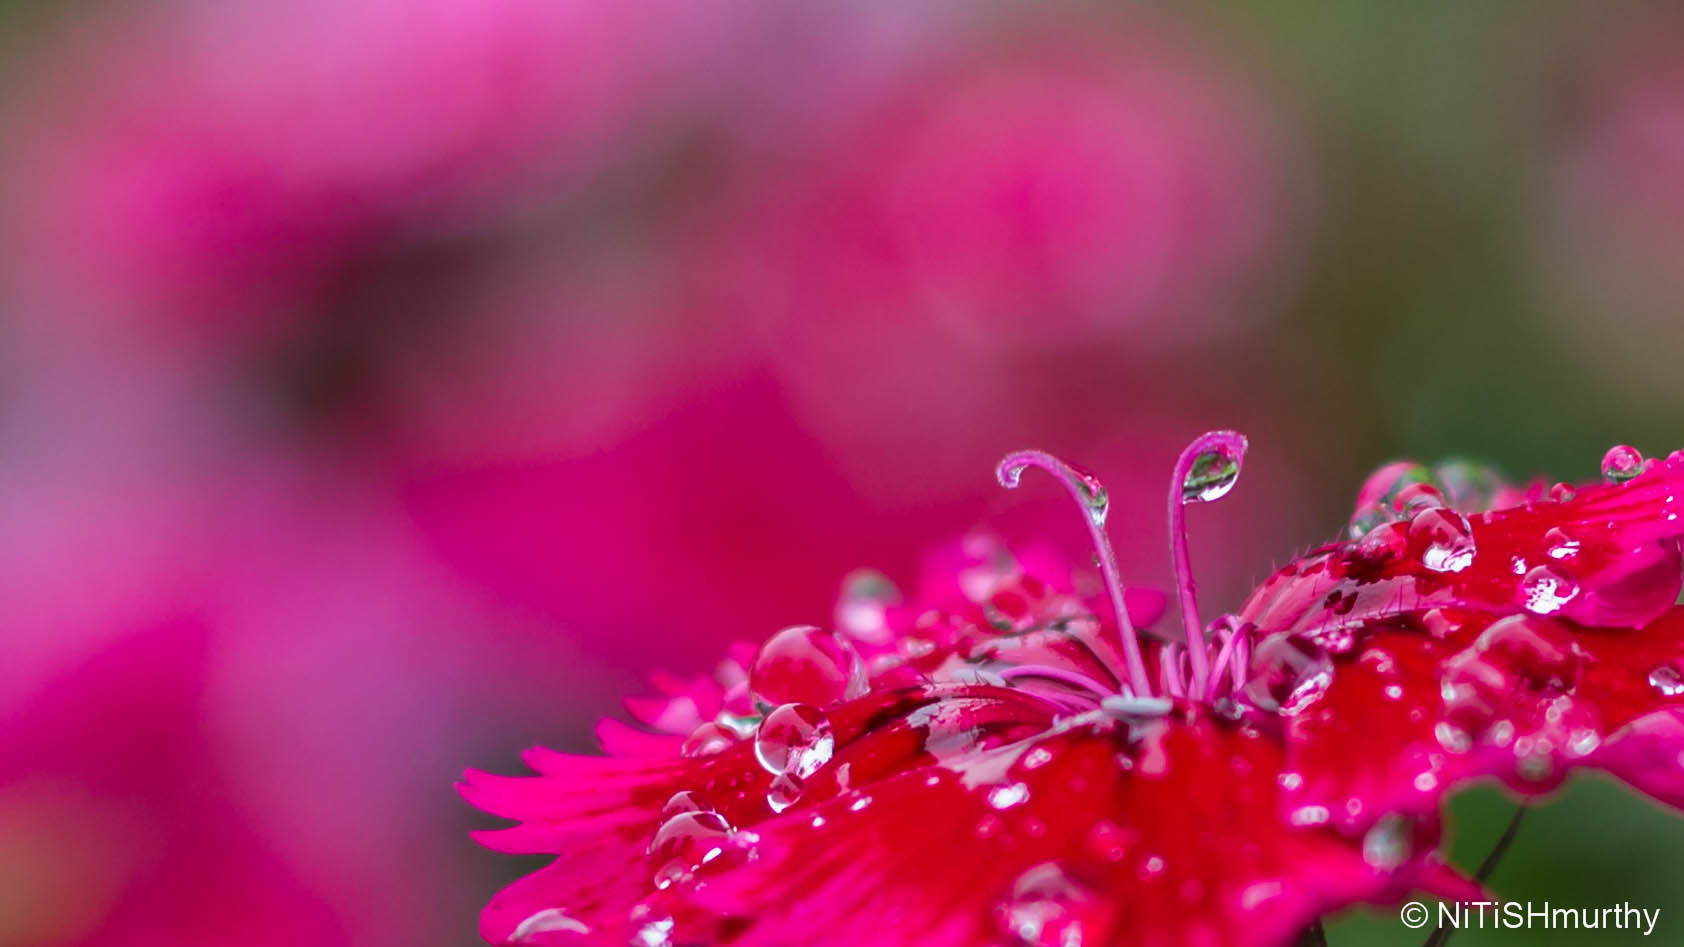 Photograph Dew Drops by Nitish Murthy on 500px